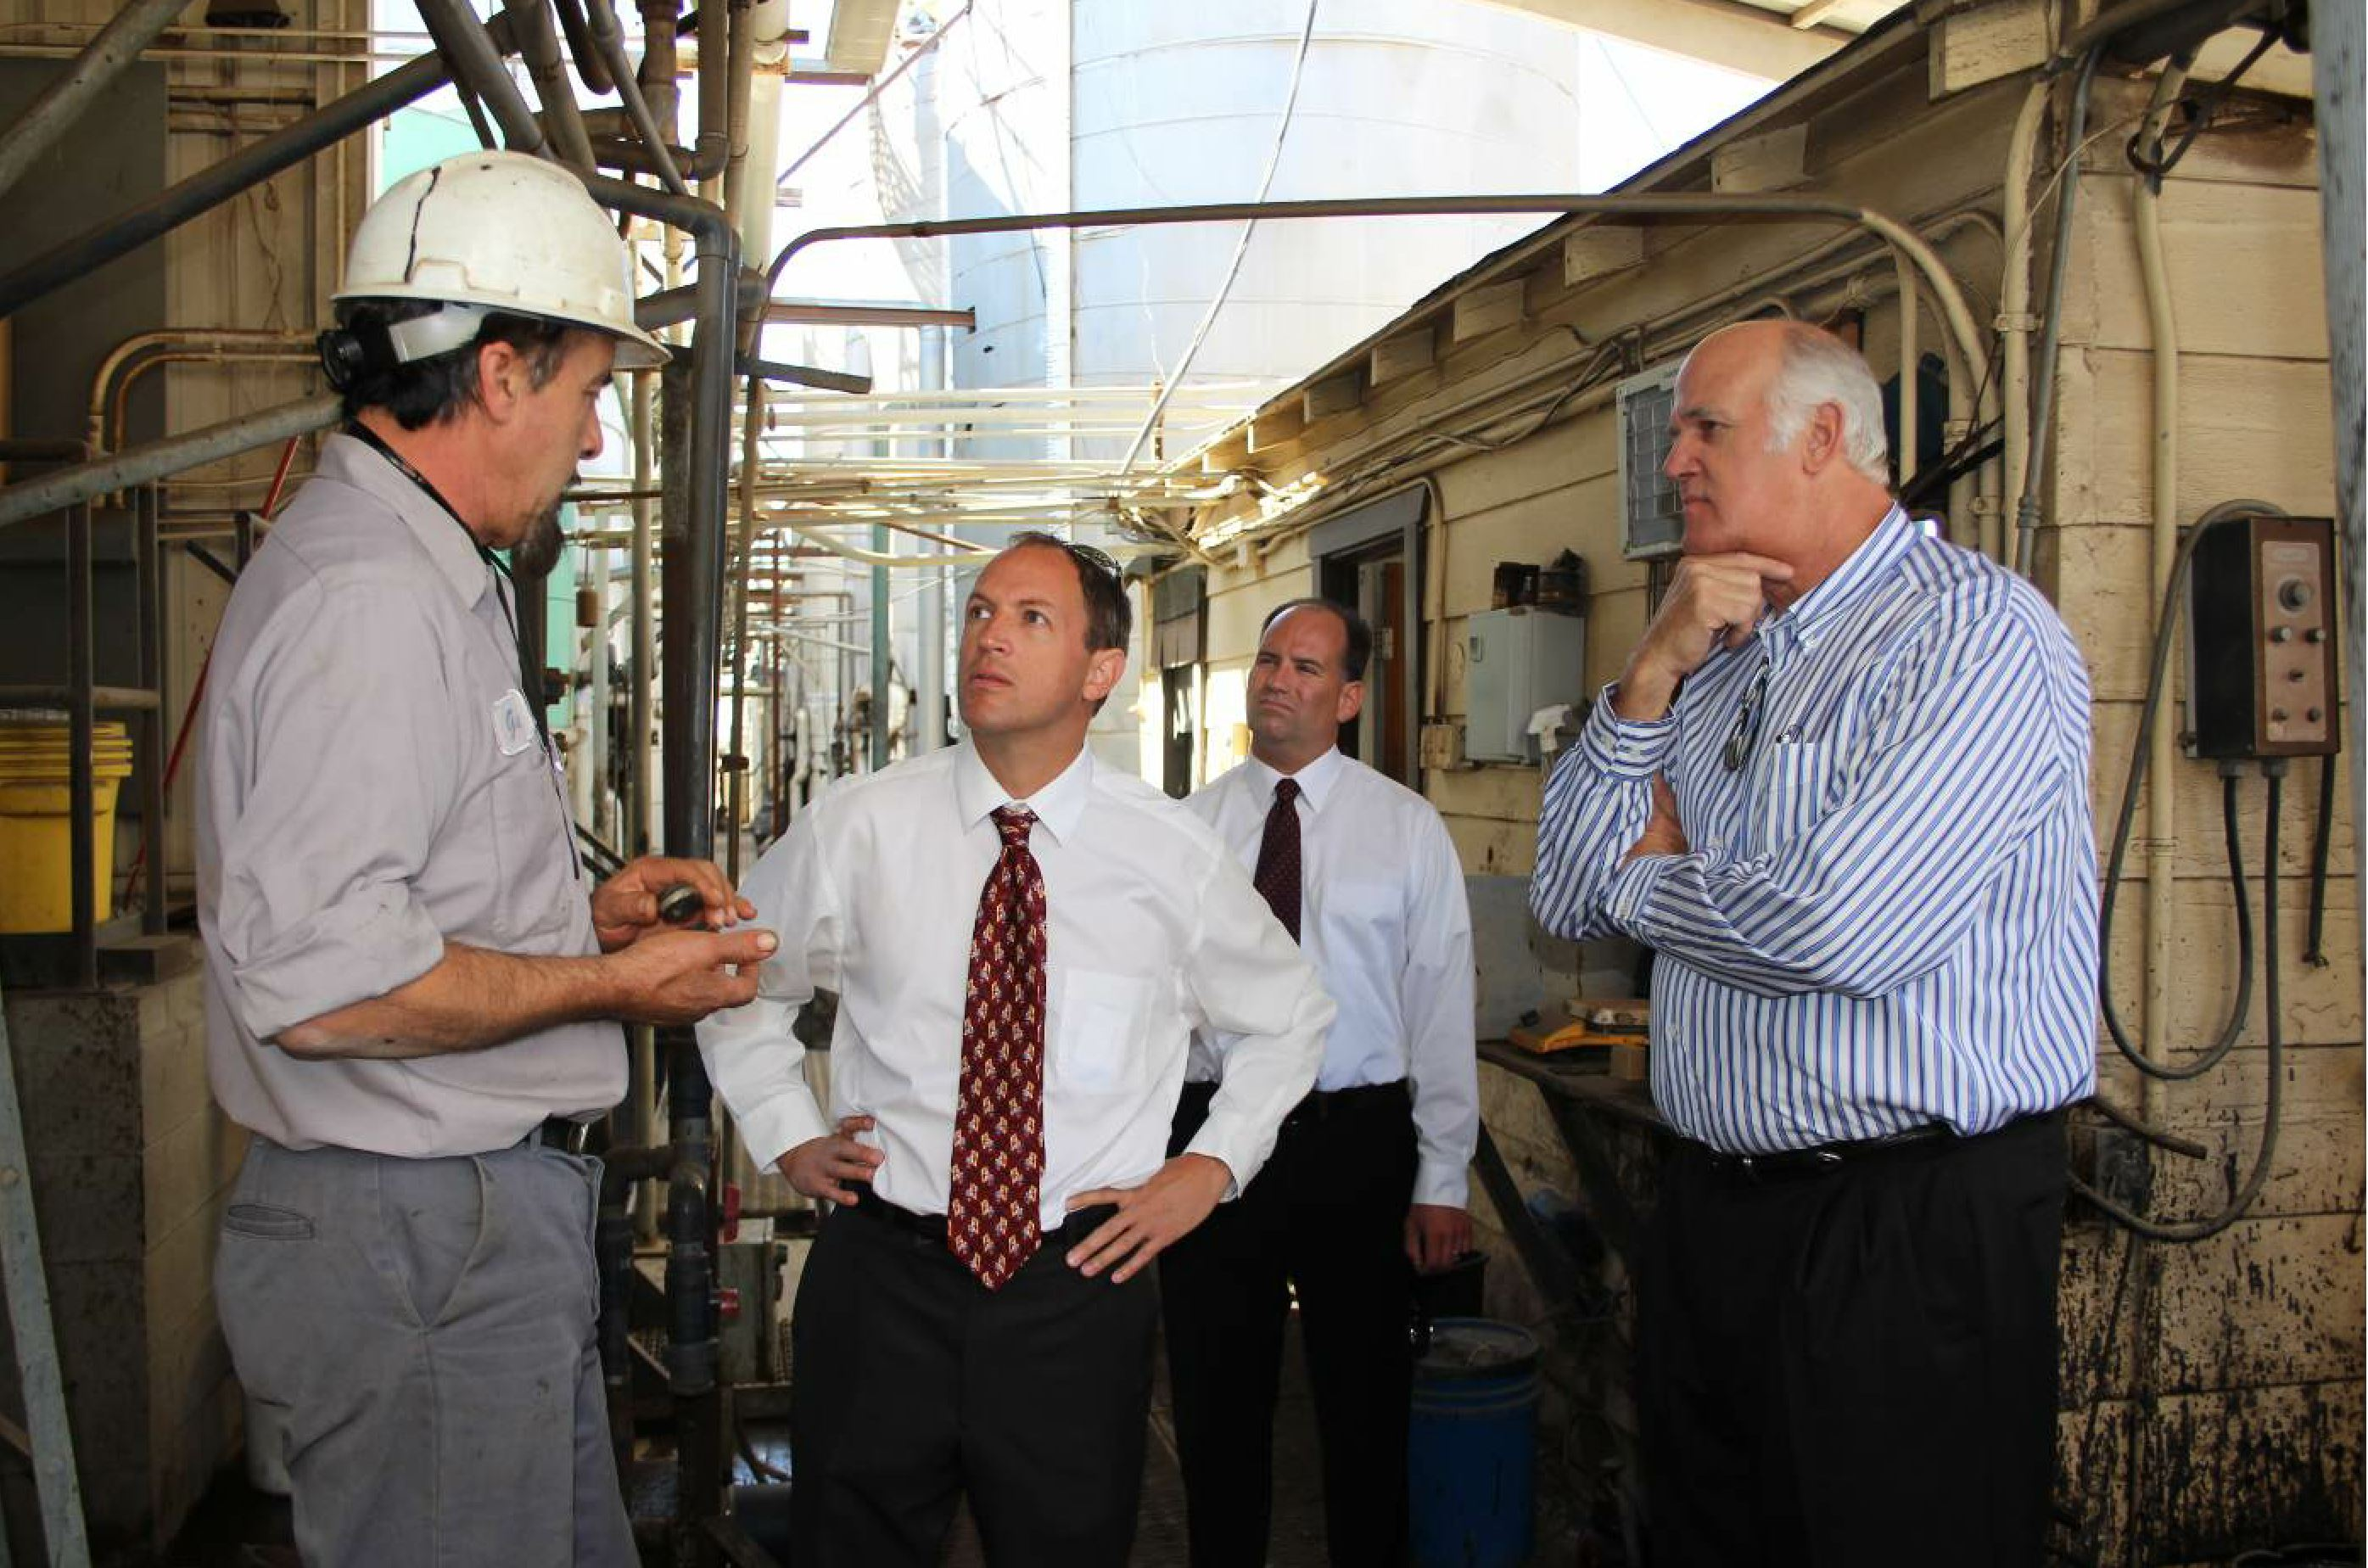 CCA participates in a number of industry initiatives, including giving plant tours to lawmakers. Photo by the California Asphalt Pavement Association (CalAPA) – used with permission.